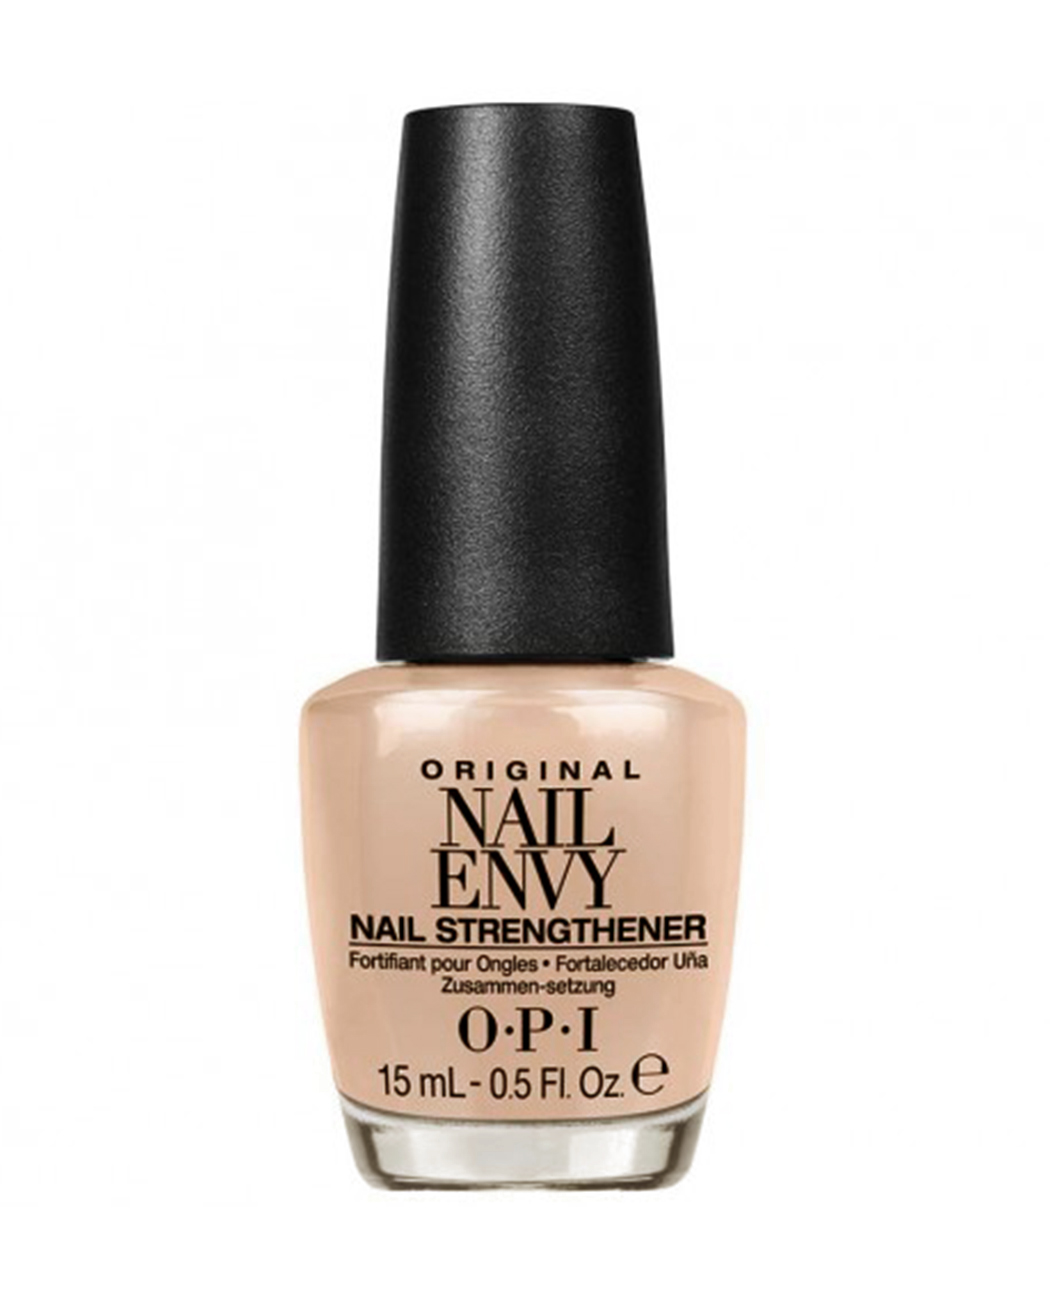 OPI Nail Envy Polish, Hawaiian Orchid, 0.5 Fl Oz